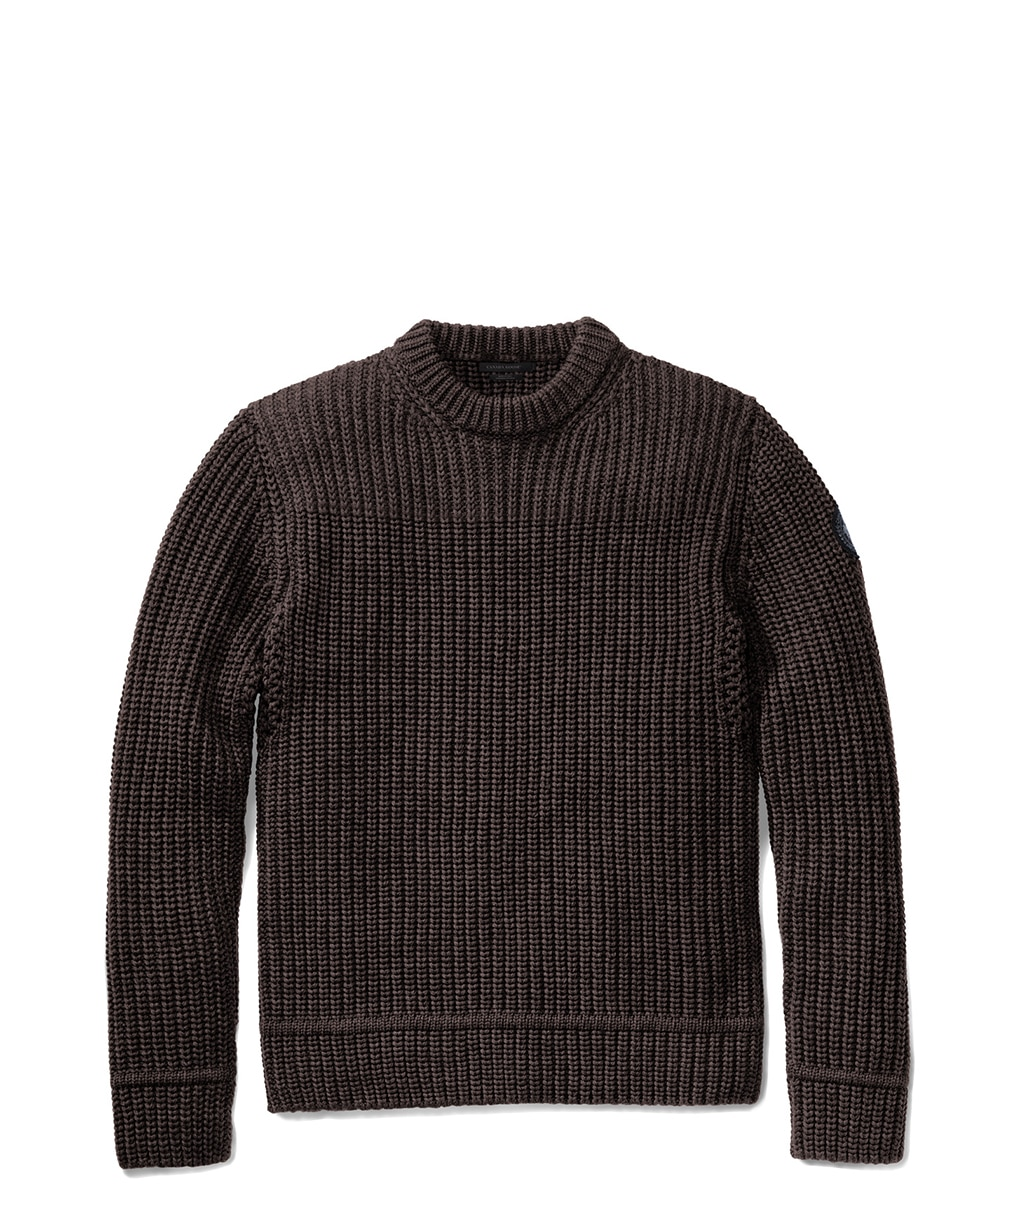 GALLOWAY SWEATER